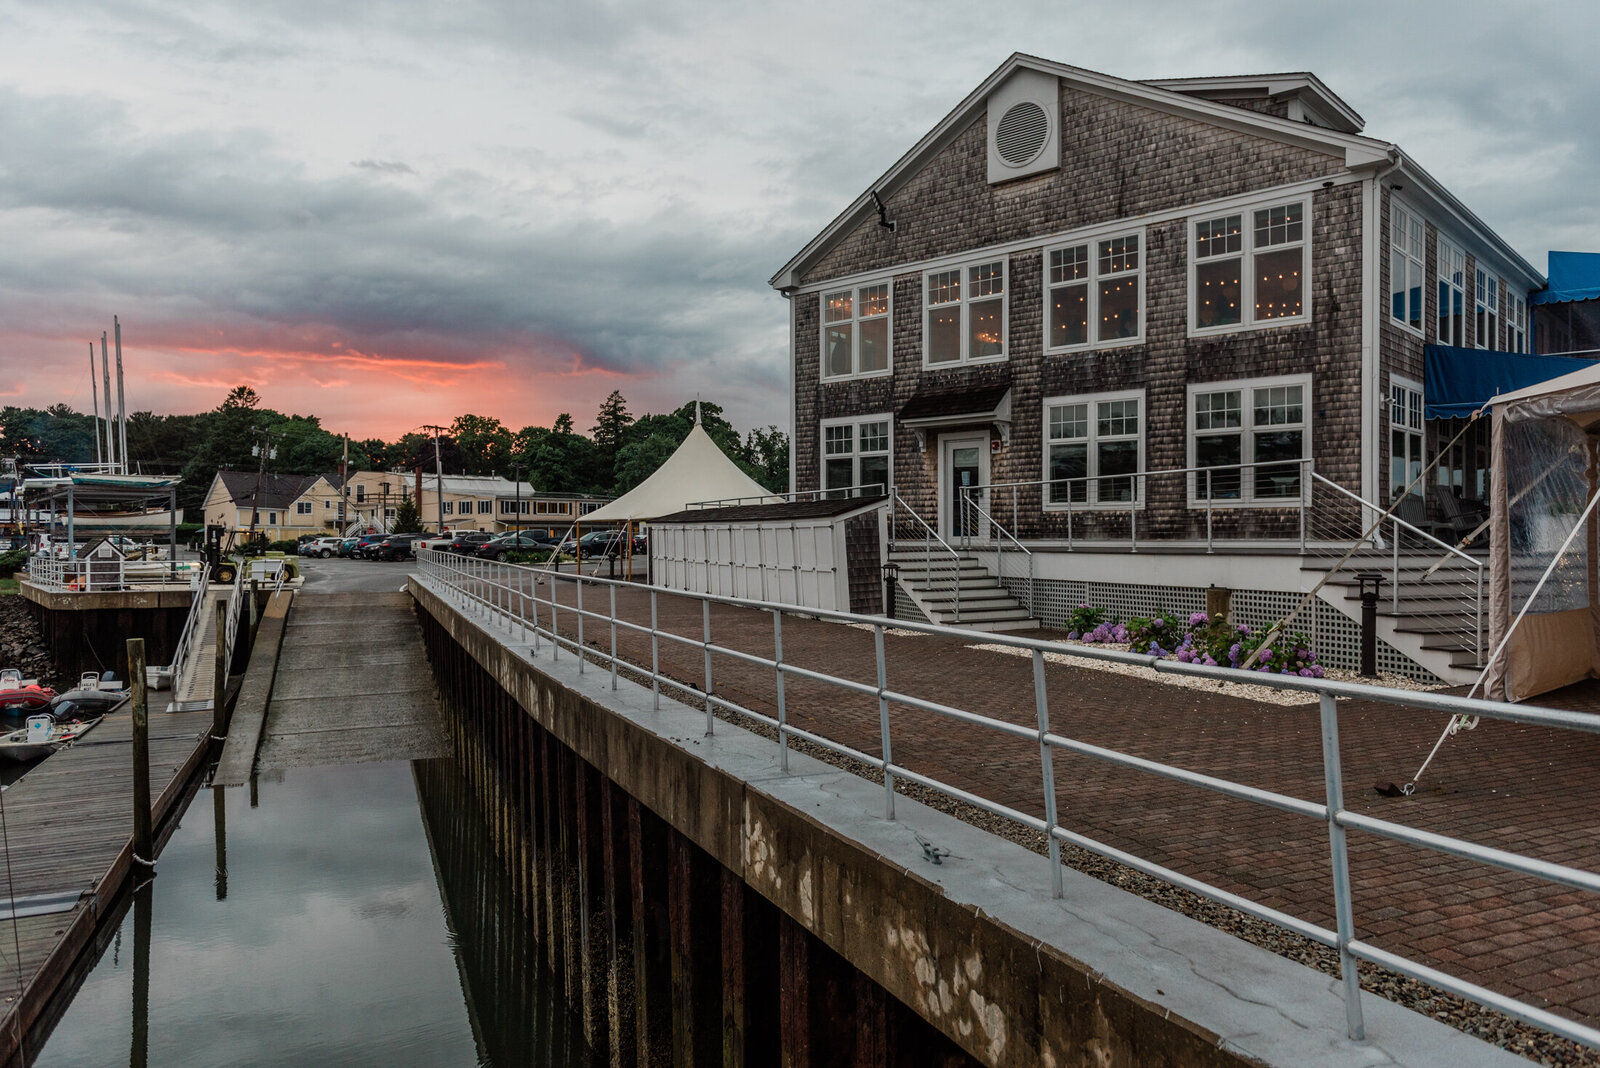 sunset over the waterfront wedding venue Duxbury Bay Maritime School